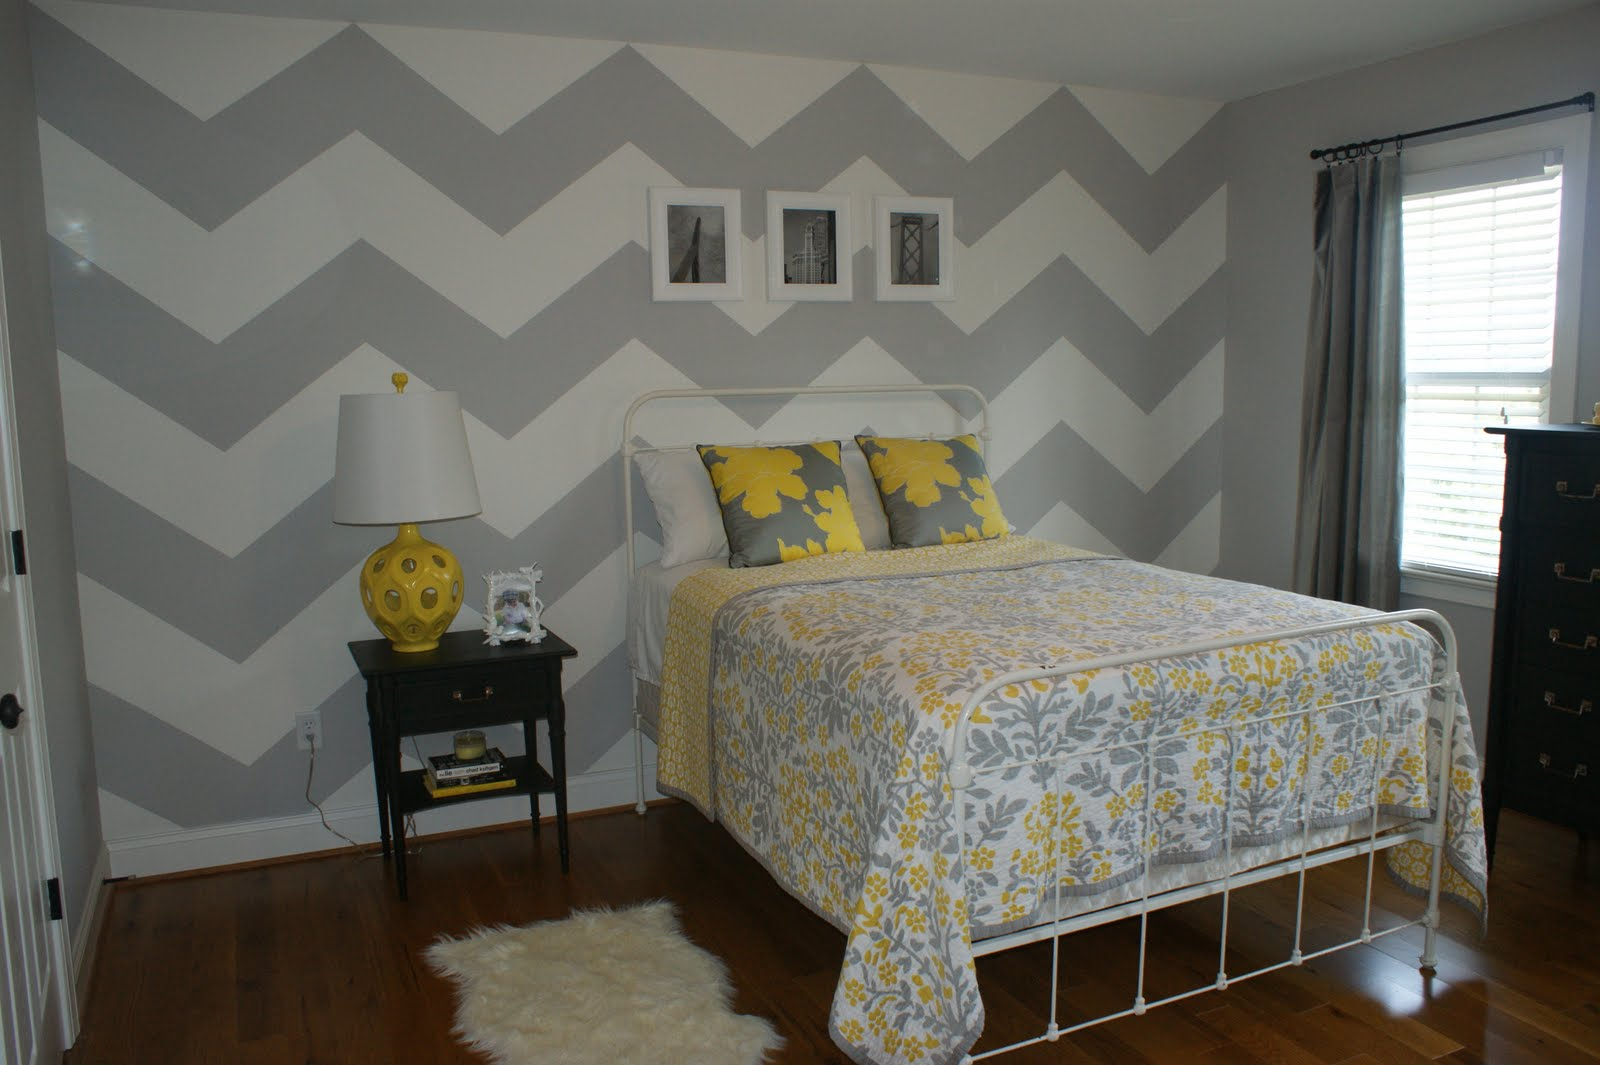 Chevron walls cline rose for Chevron template for walls